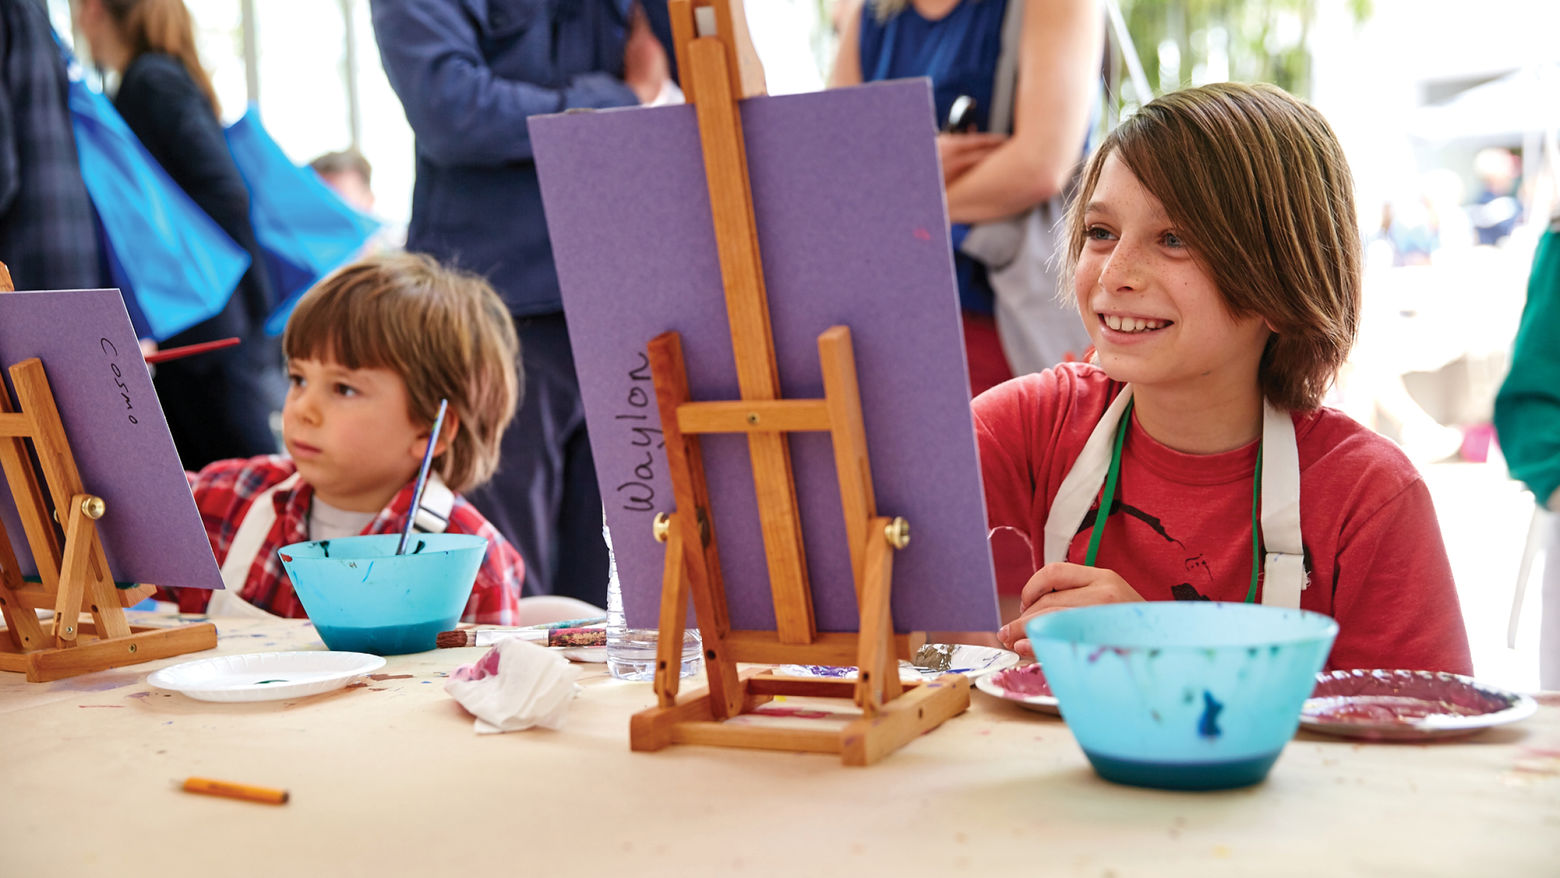 Two children paint at easels